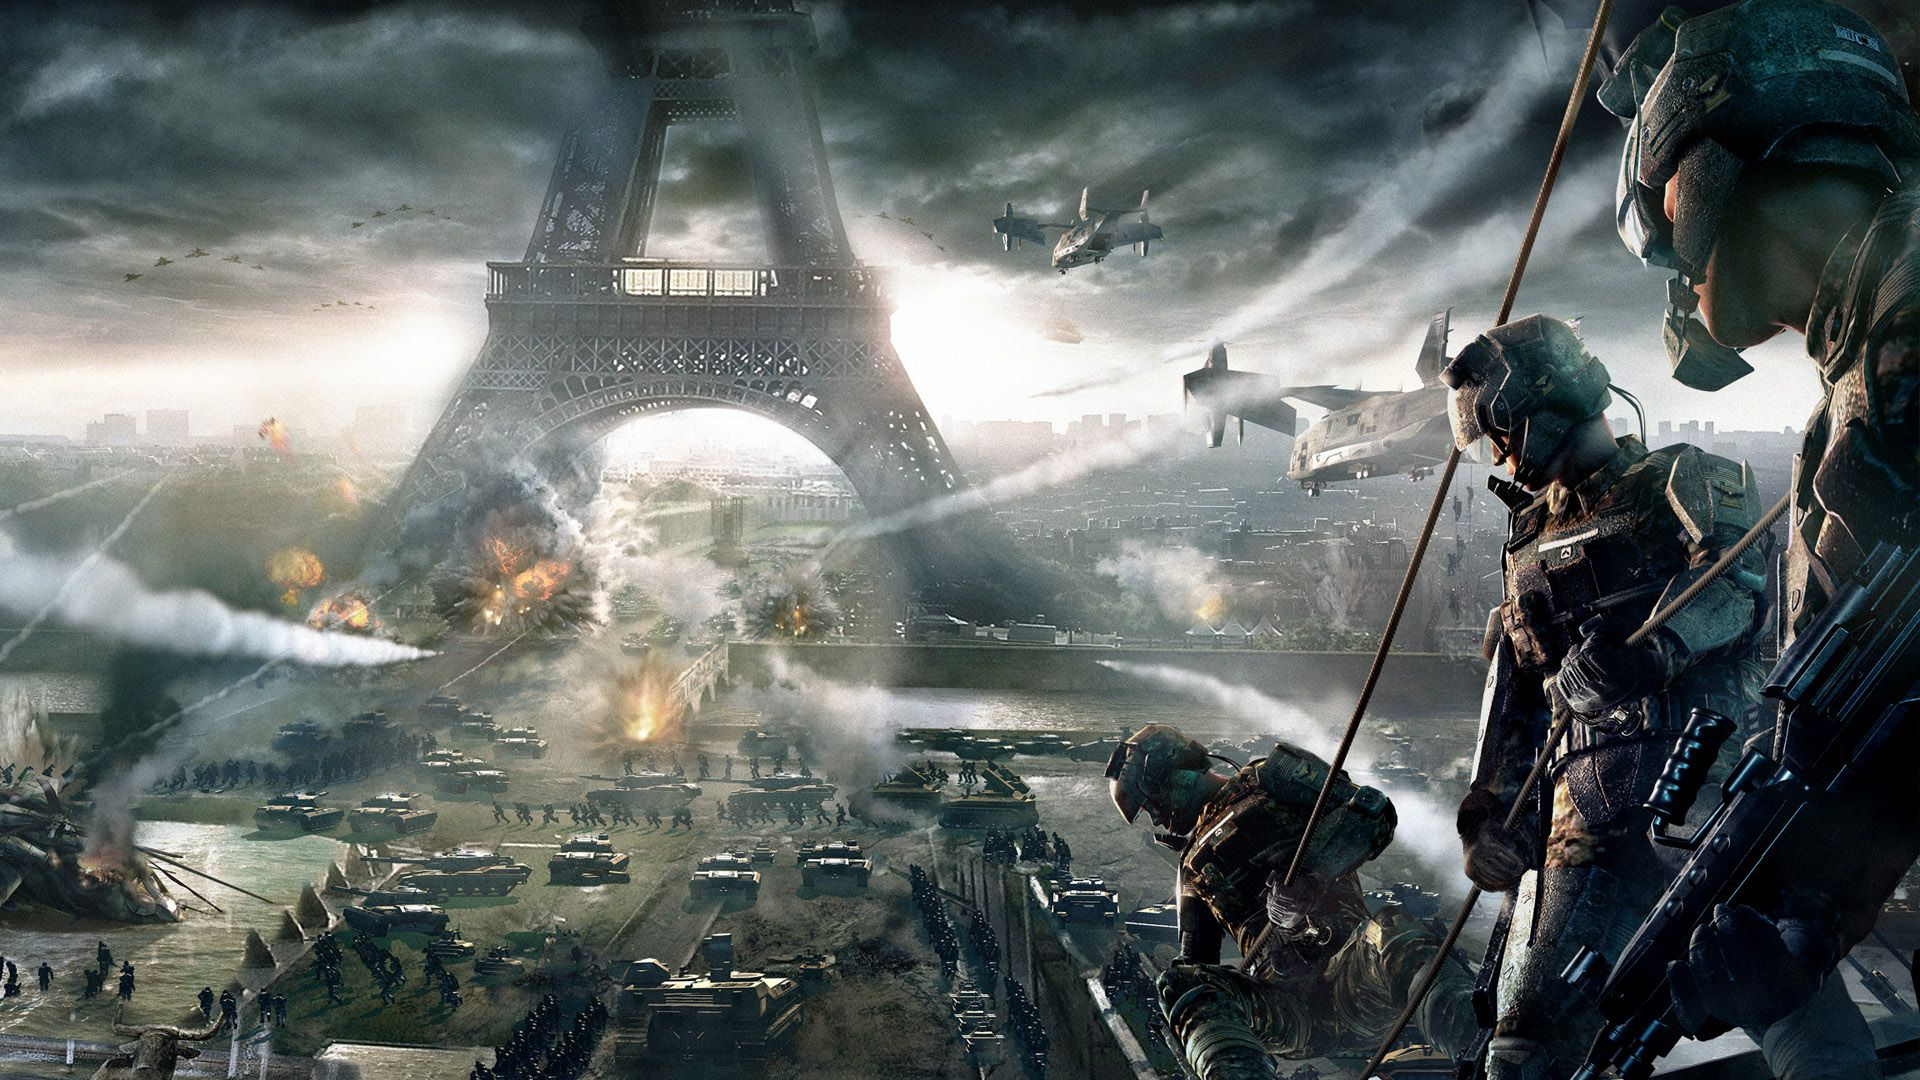 Full Hd 1920x1080 Wallpapers Call Of Duty Gaming Wallpapers Wallpaper Pc